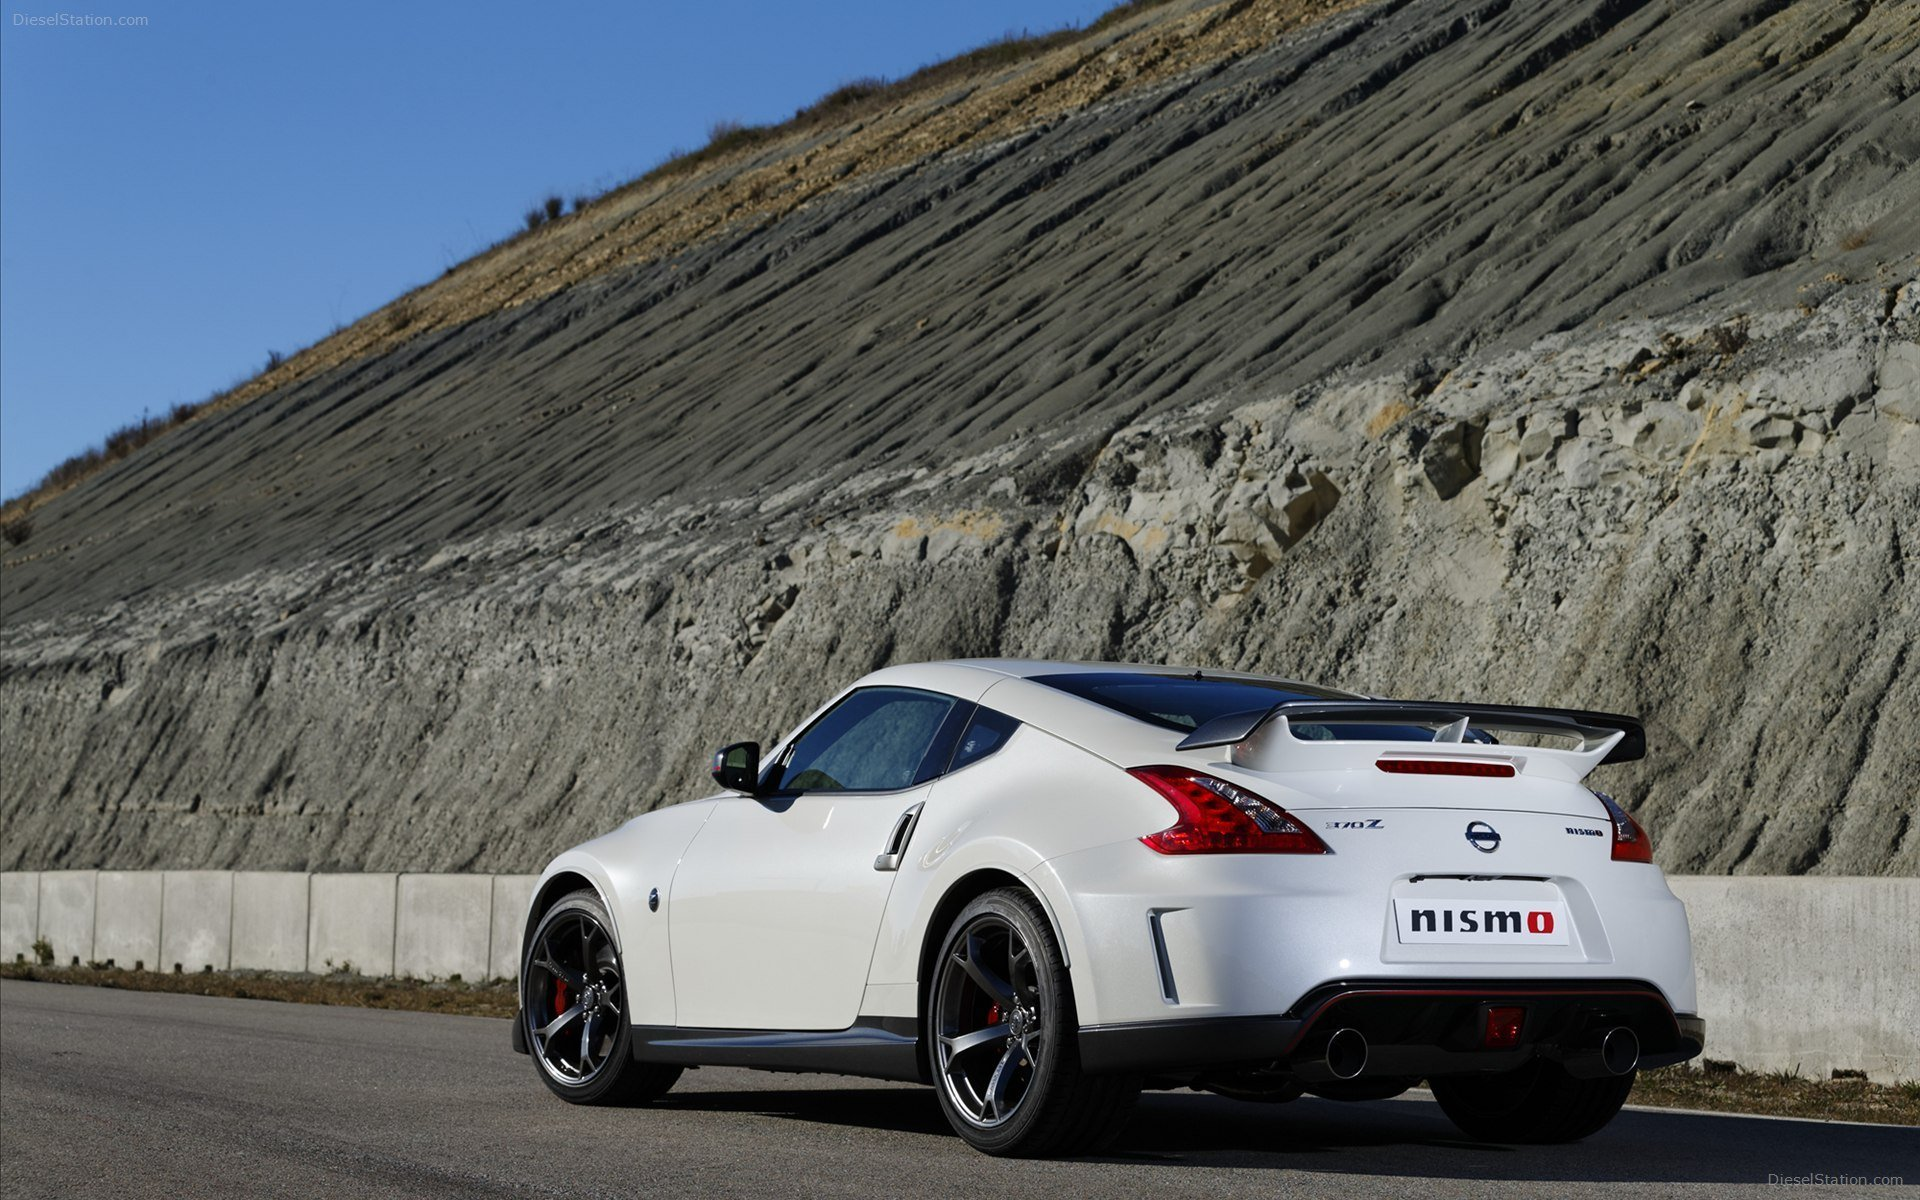 New Nissan 370Z Nismo 2014 Widescreen Exotic Car Wallpaper 03 On This Month